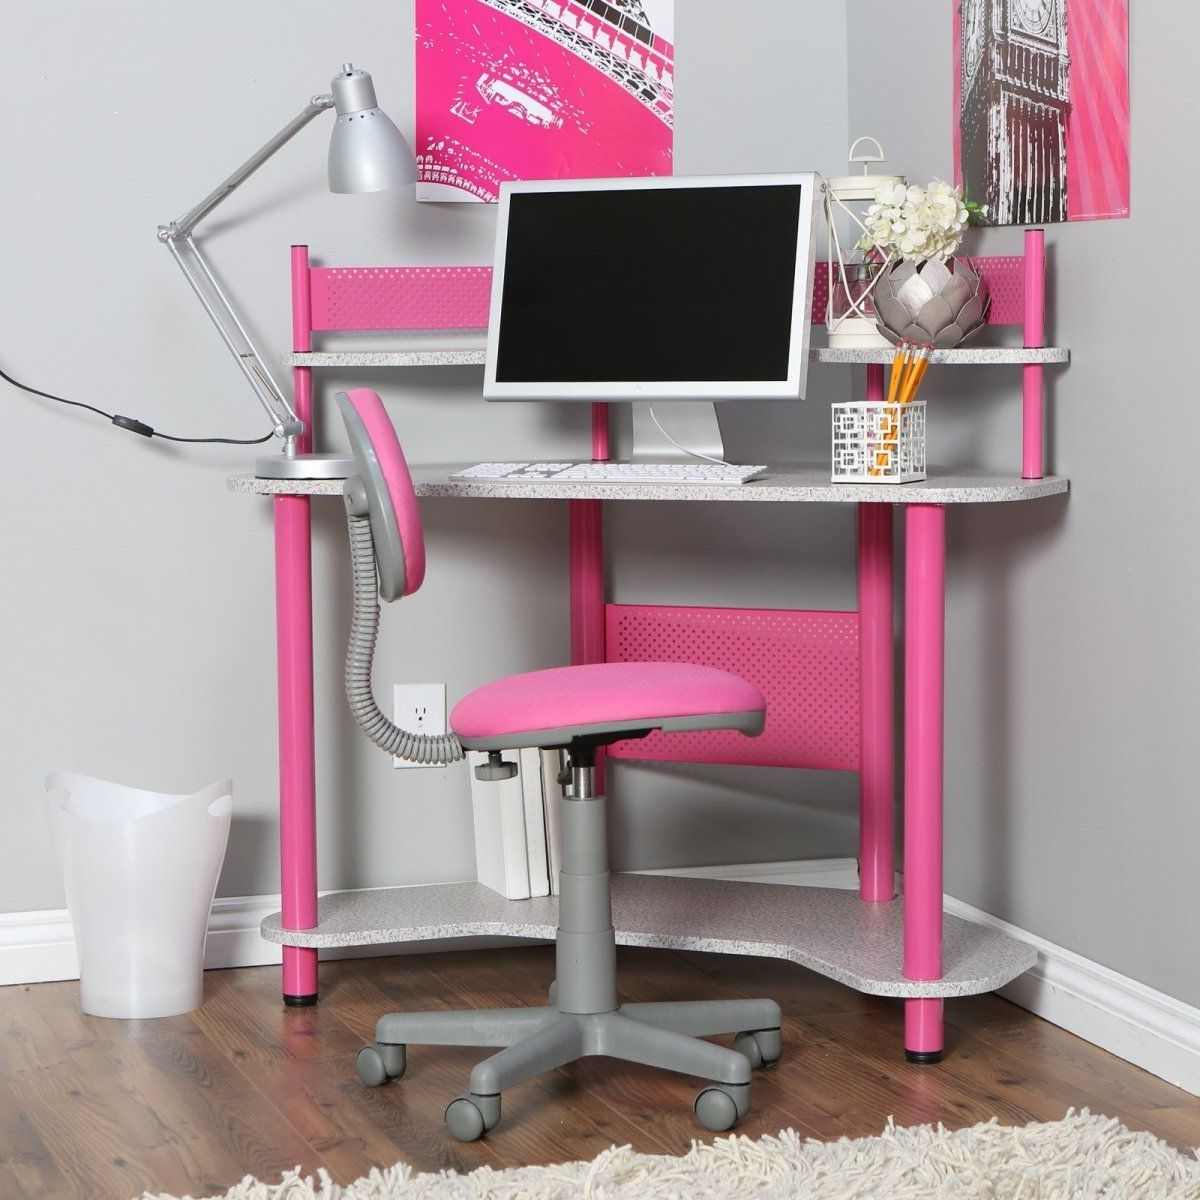 Furniture For Girl Bedroom Design (View 12 of 20)